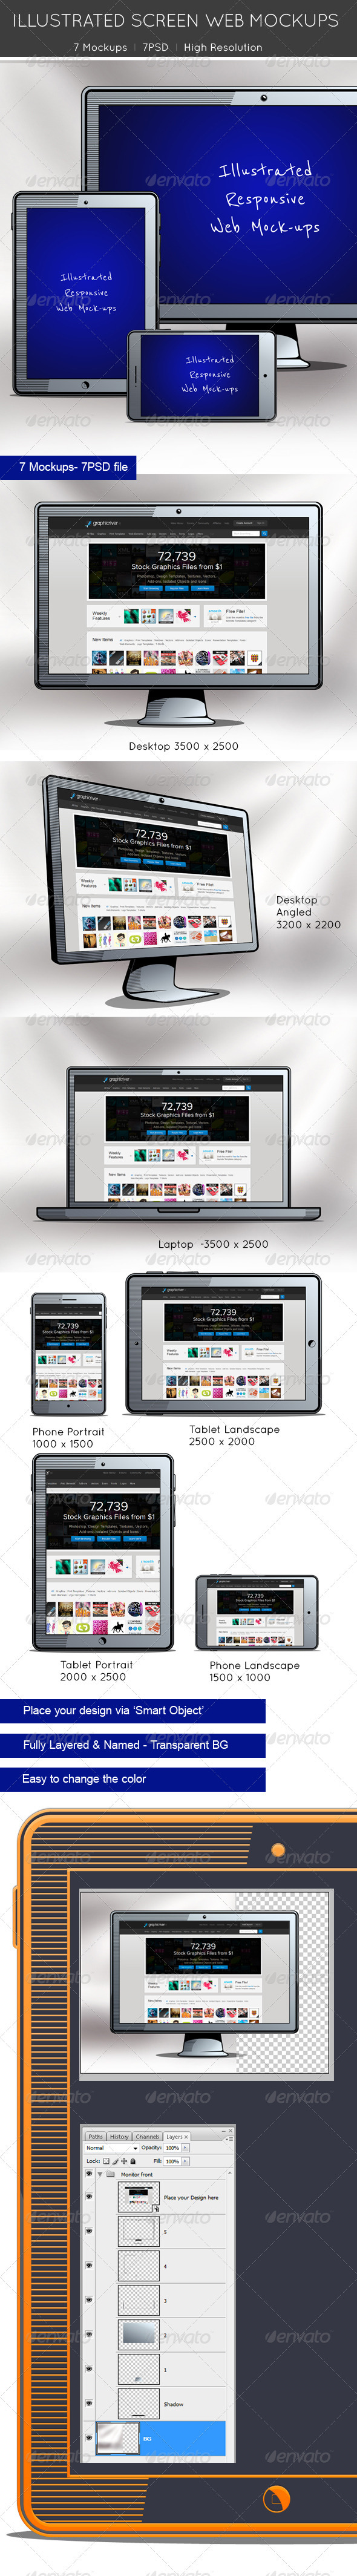 Illustrated Screen Web Mockups - Multiple Displays